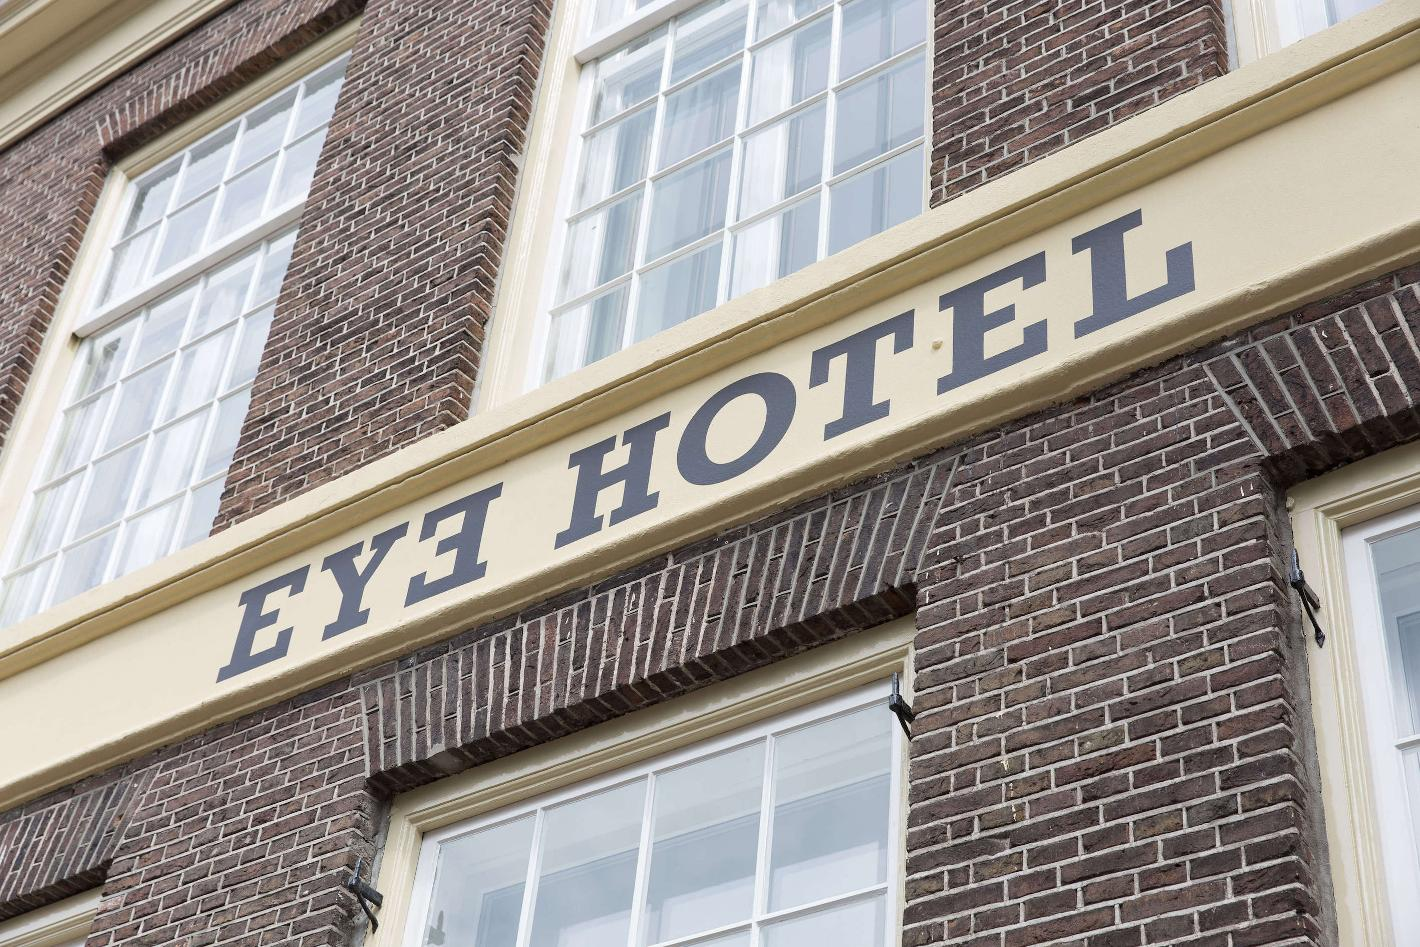 Photo Eye Hotel in Utrecht, Sleep, Hotels & accommodations - #4